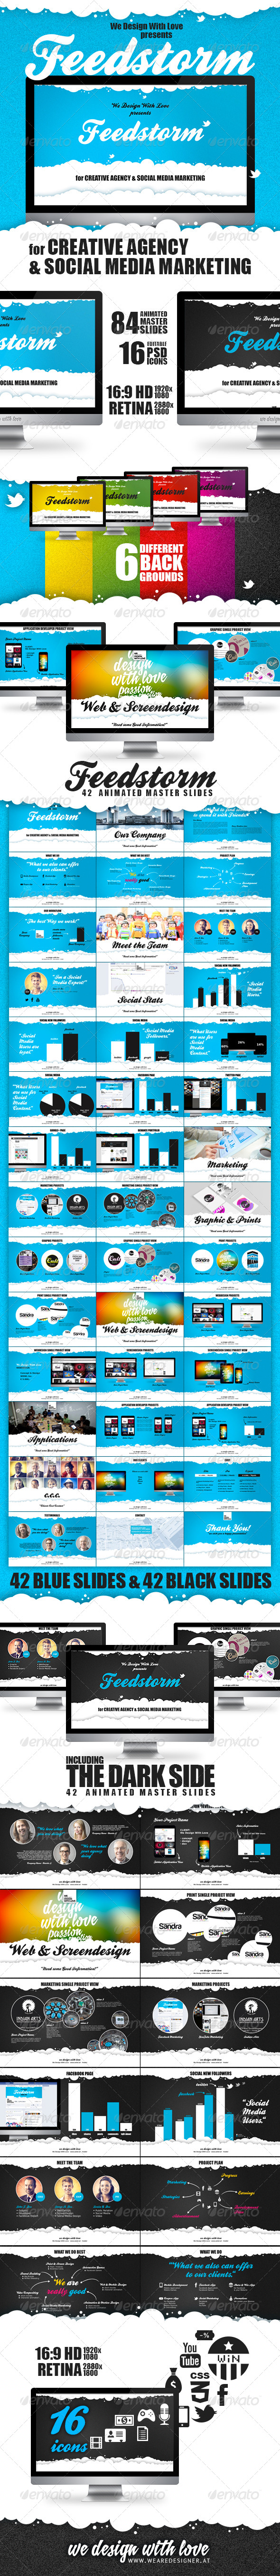 GraphicRiver FEEDSTORM 84 Pages Keynote Presentation 4861782